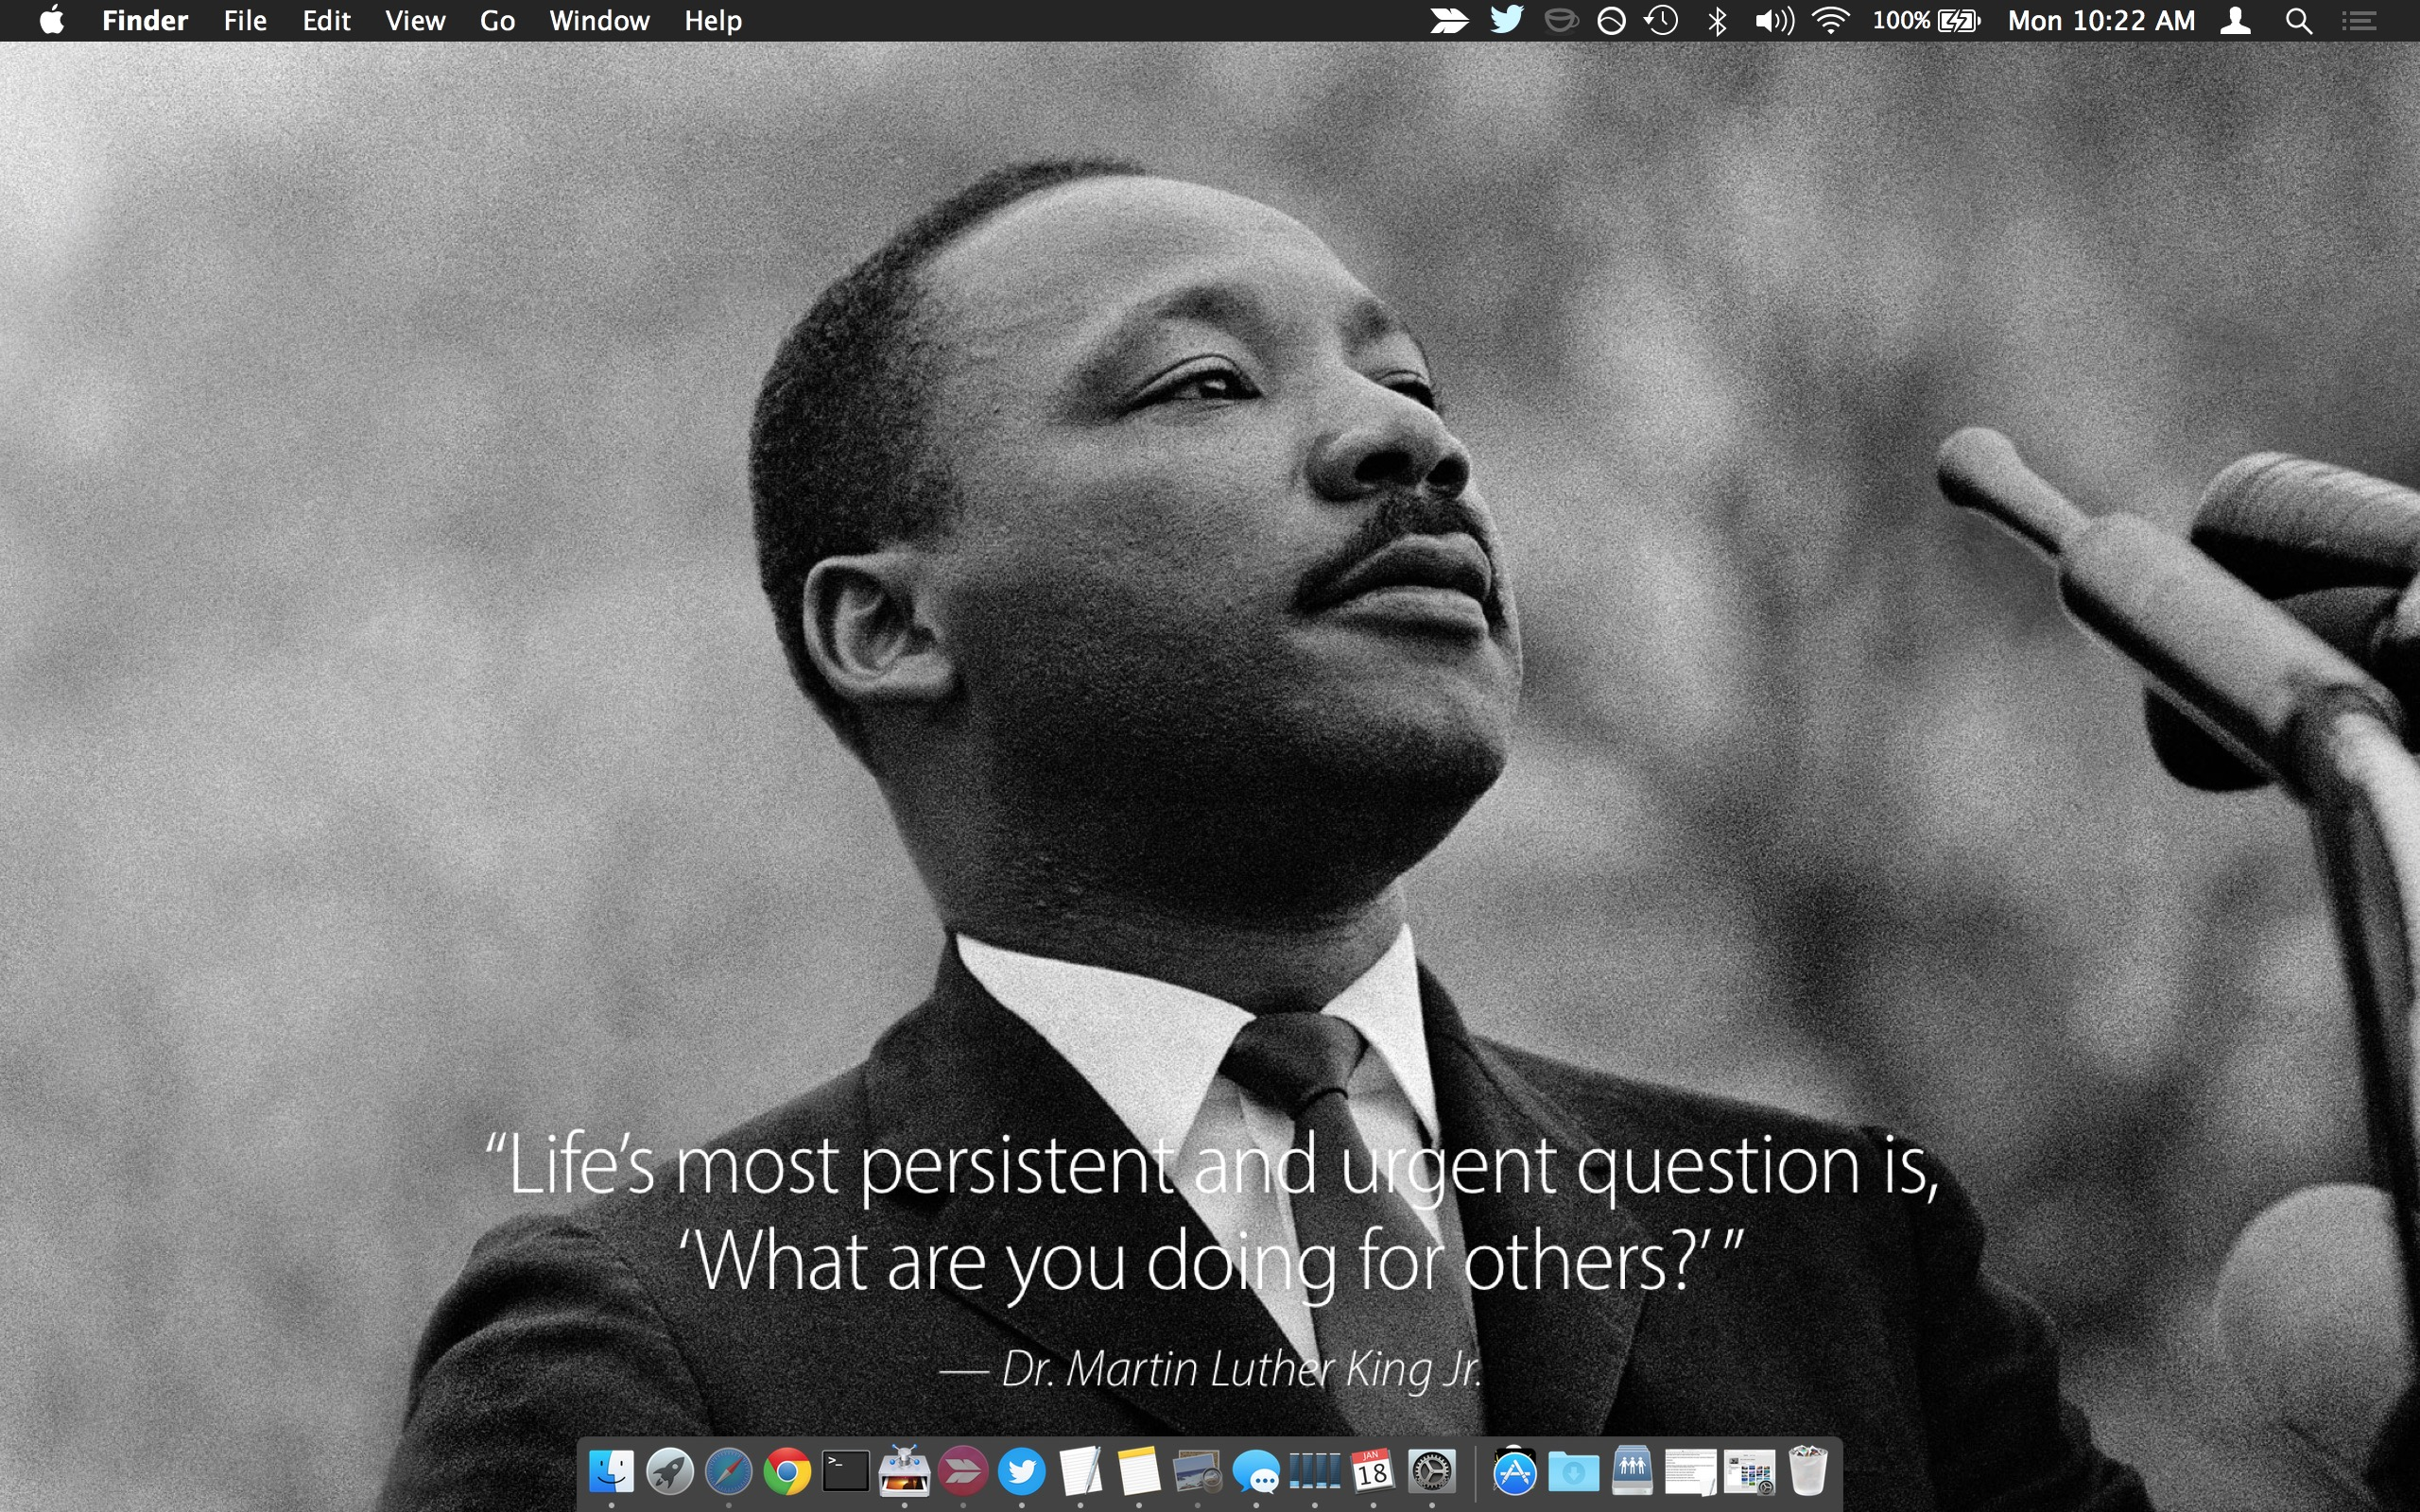 Get an Inspirational Martin Luther King Jr Quote Wallpaper from Apple 2560x1600